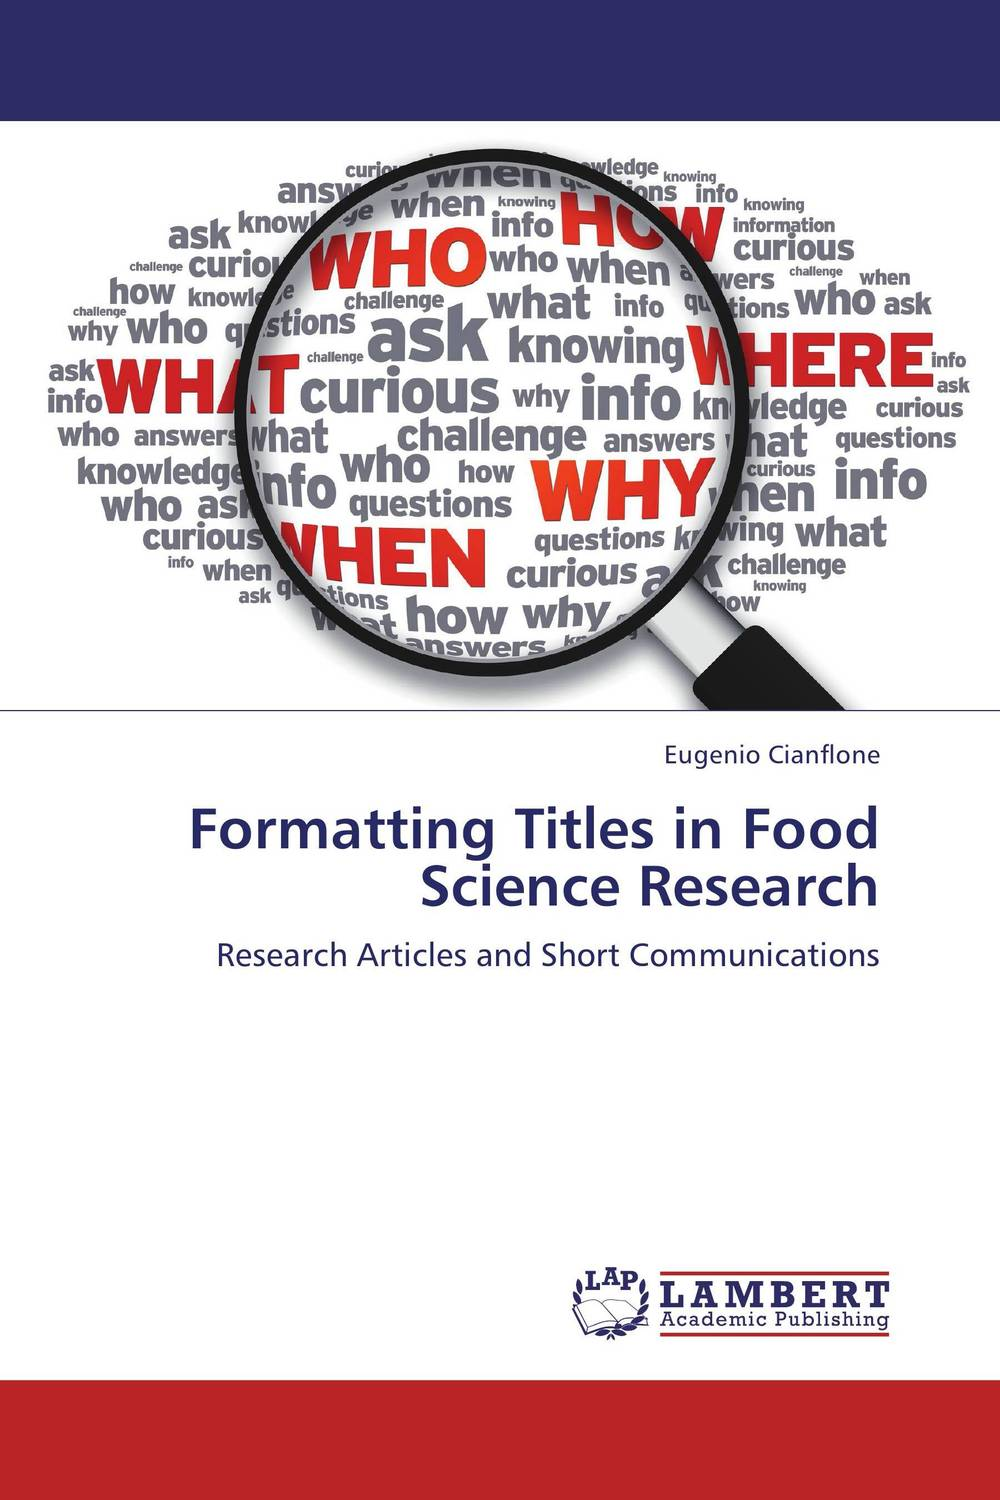 Formatting Titles in Food Science Research voluntary associations in tsarist russia – science patriotism and civil society